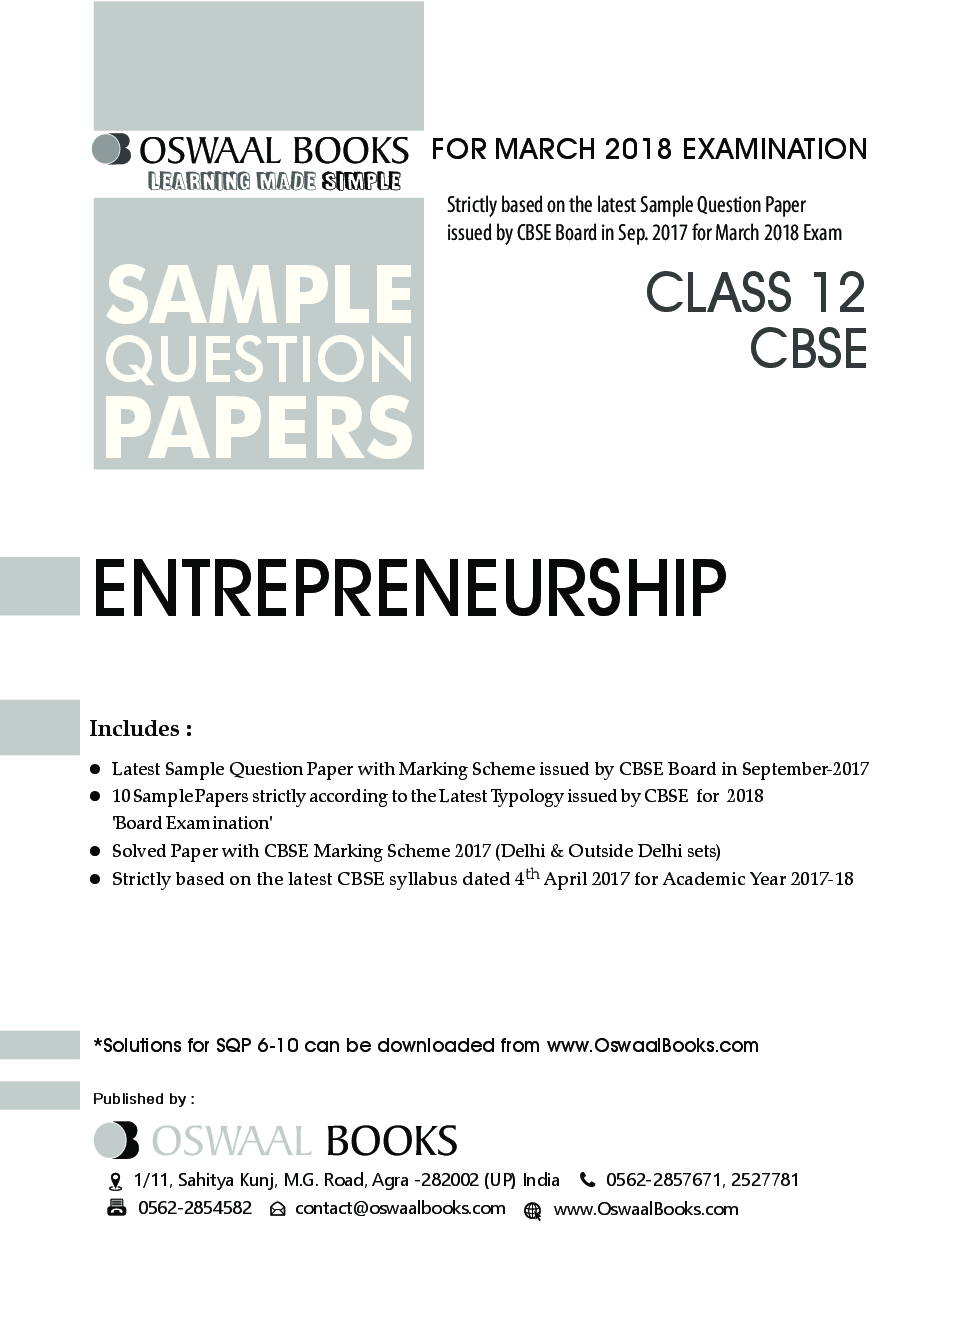 Download Oswaal CBSE Sample Question Papers For Class XII Entrepreneurship  (Mar  2018 Exam) by Panel Of Experts PDF Online